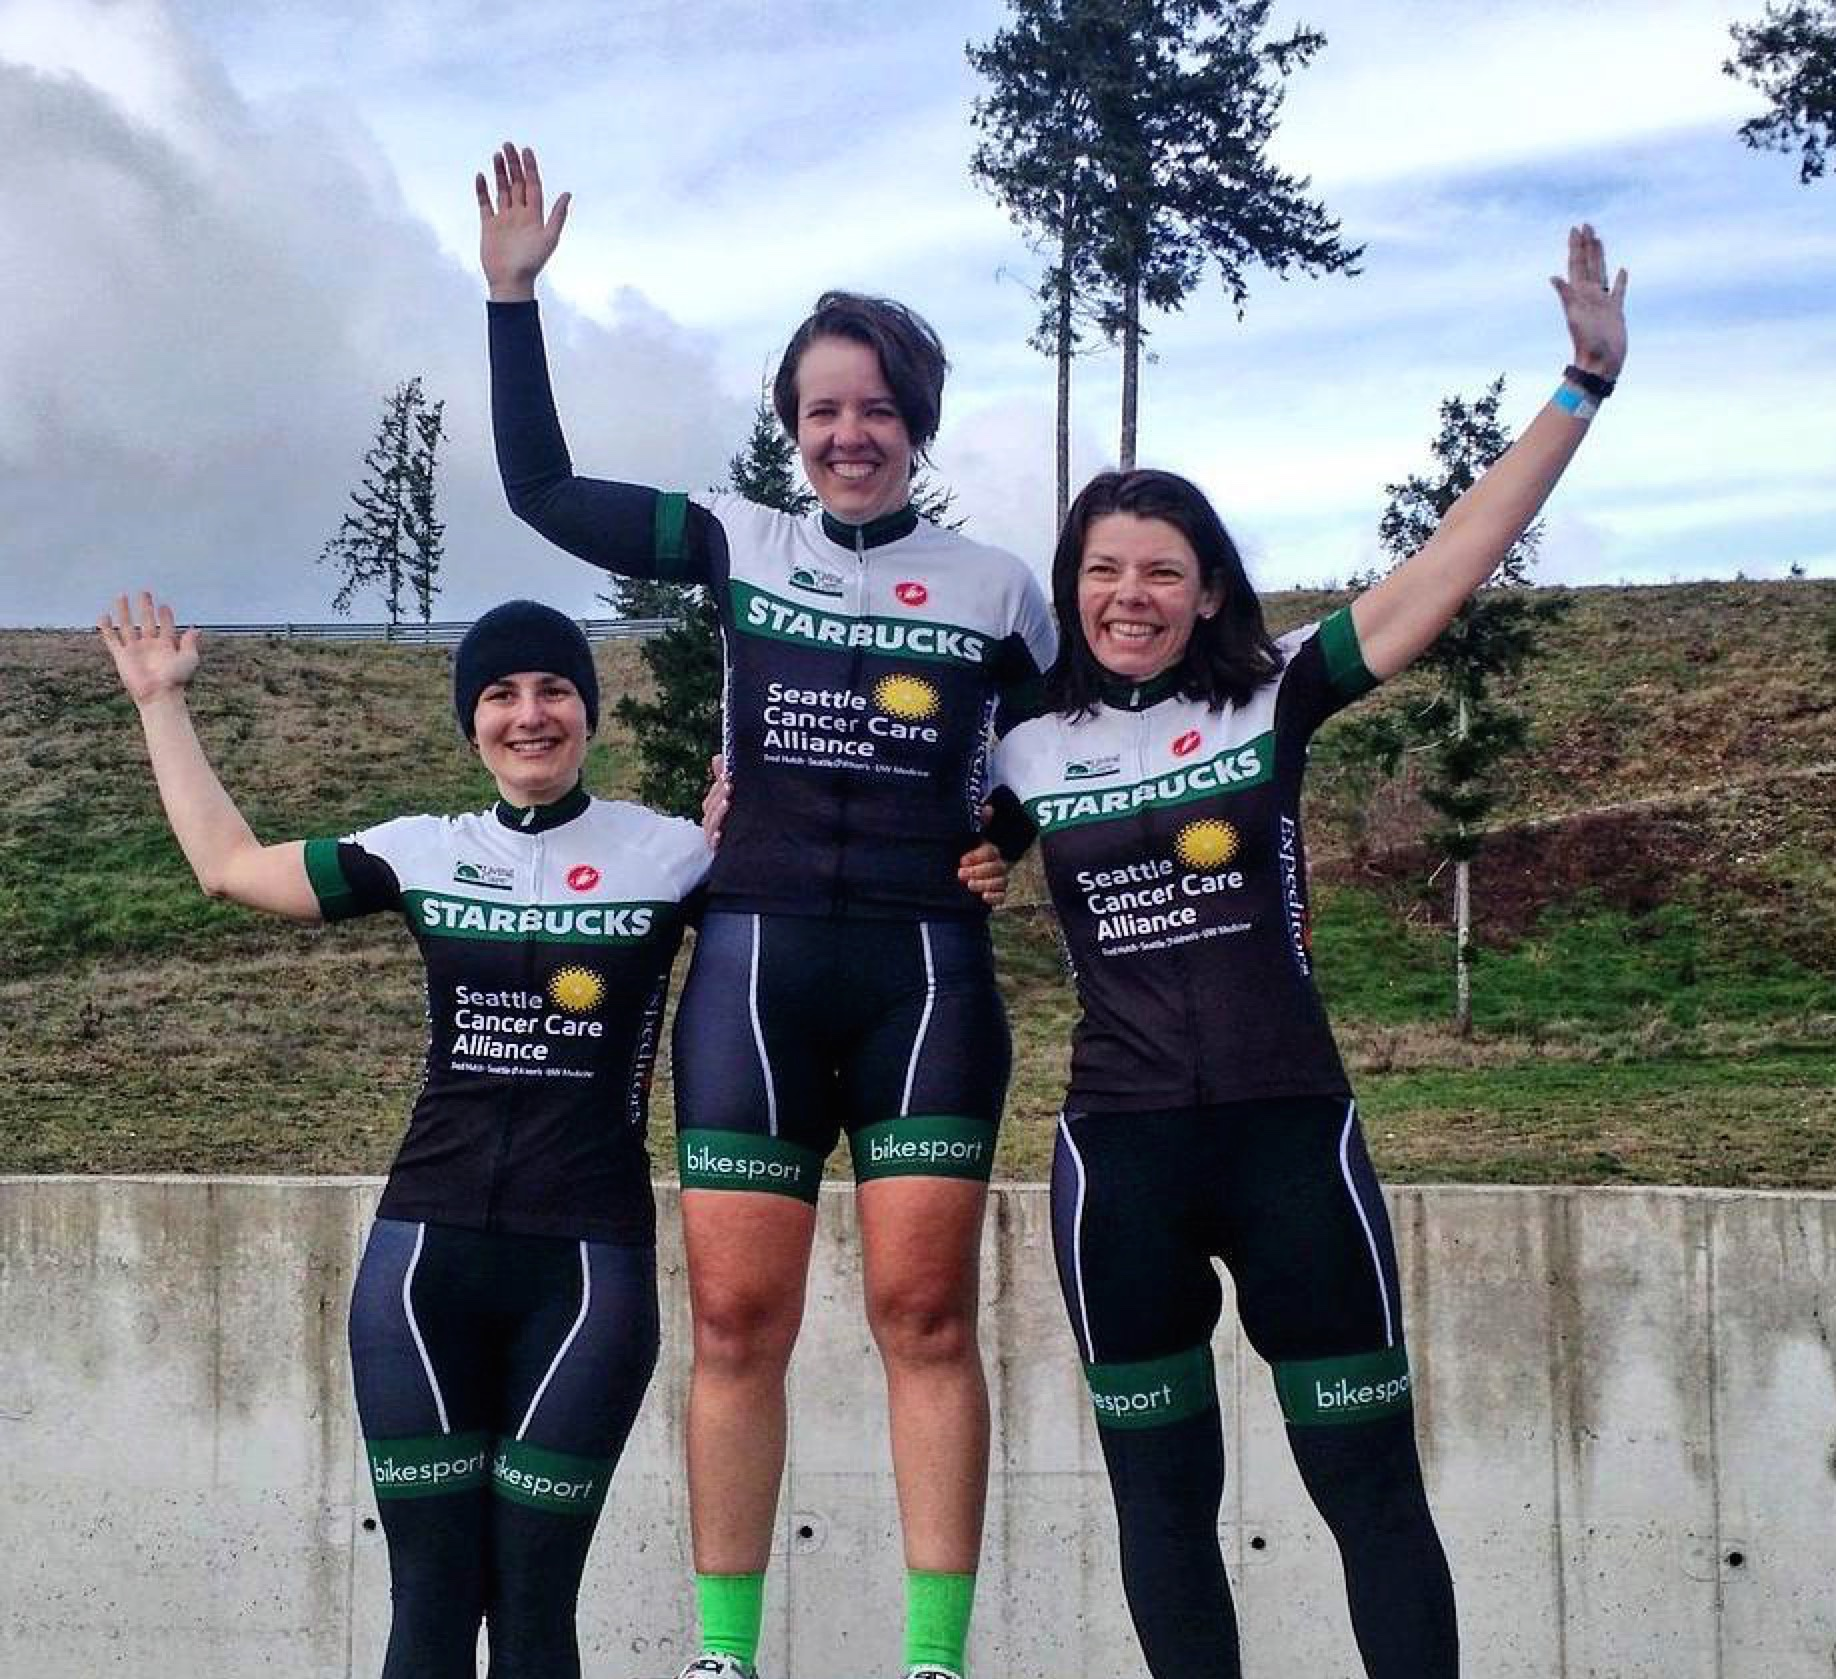 Not just one but two Tête de la Course coached athletes on the podium. Emily Alexander with the win and Karen Doherty in second as the Starbucks Cat 4 women sweep the podium at The Ridge Circuit Race over the weekend. Awesome job ladies!